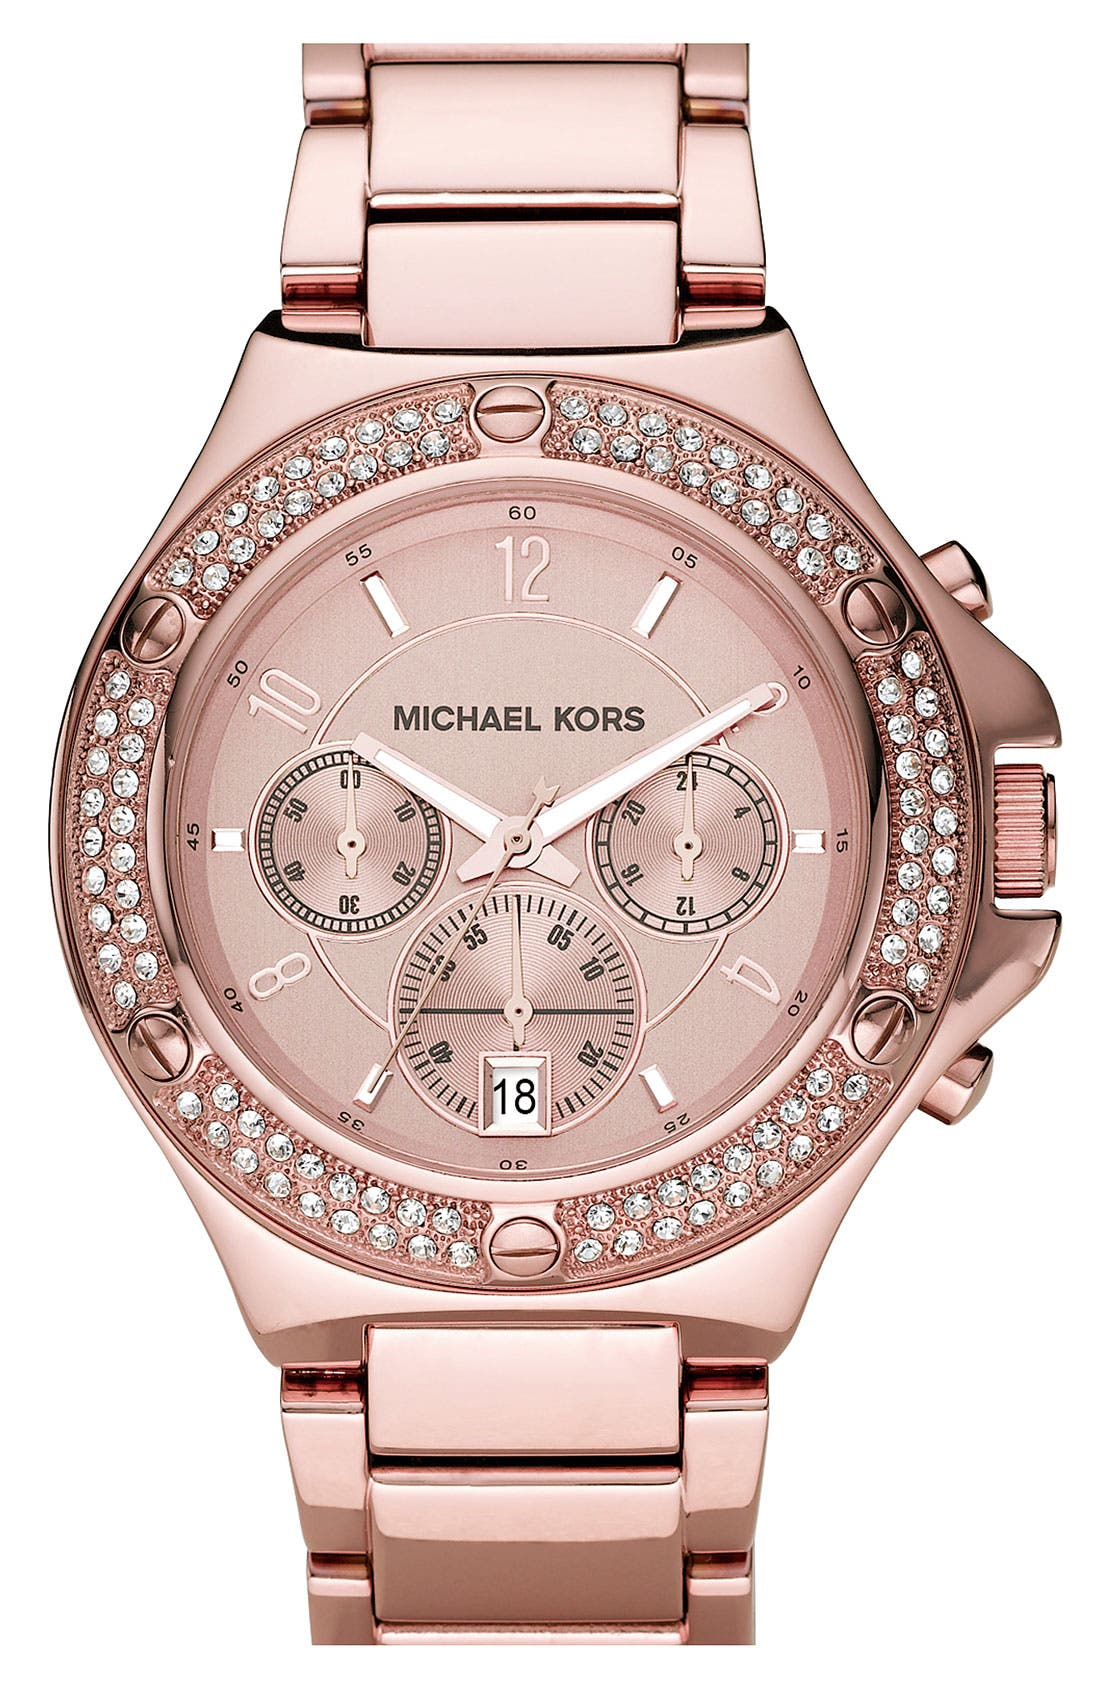 Main Image - Michael Kors 'Rock Top' Rose Gold Bracelet Watch